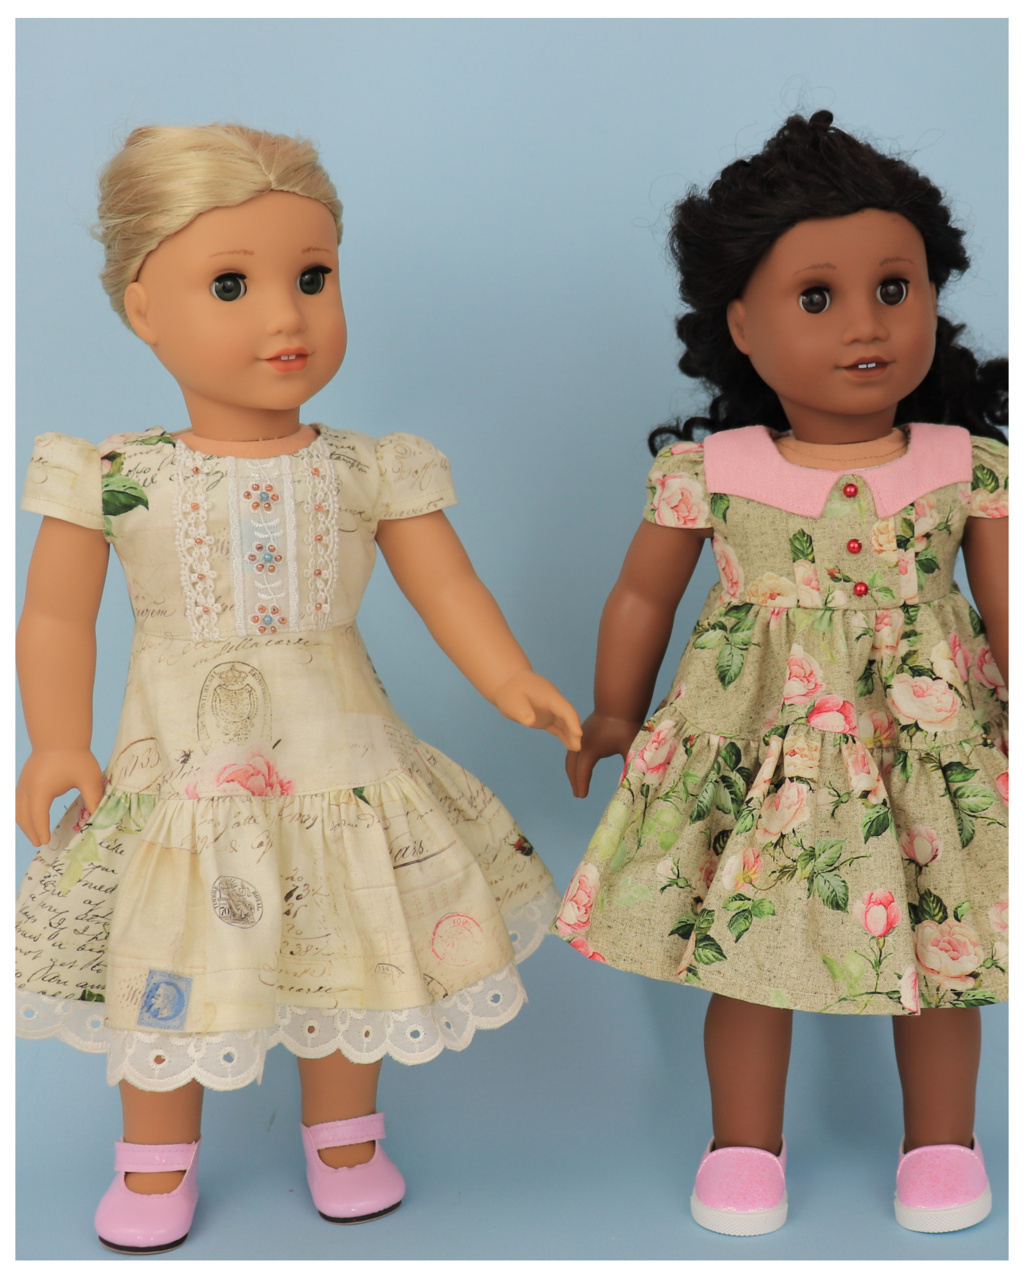 Doll clothes pdf sewing pattern, frocks & frolics, sewing for dolls, 18 inch doll, american doll, pin tucks and lace